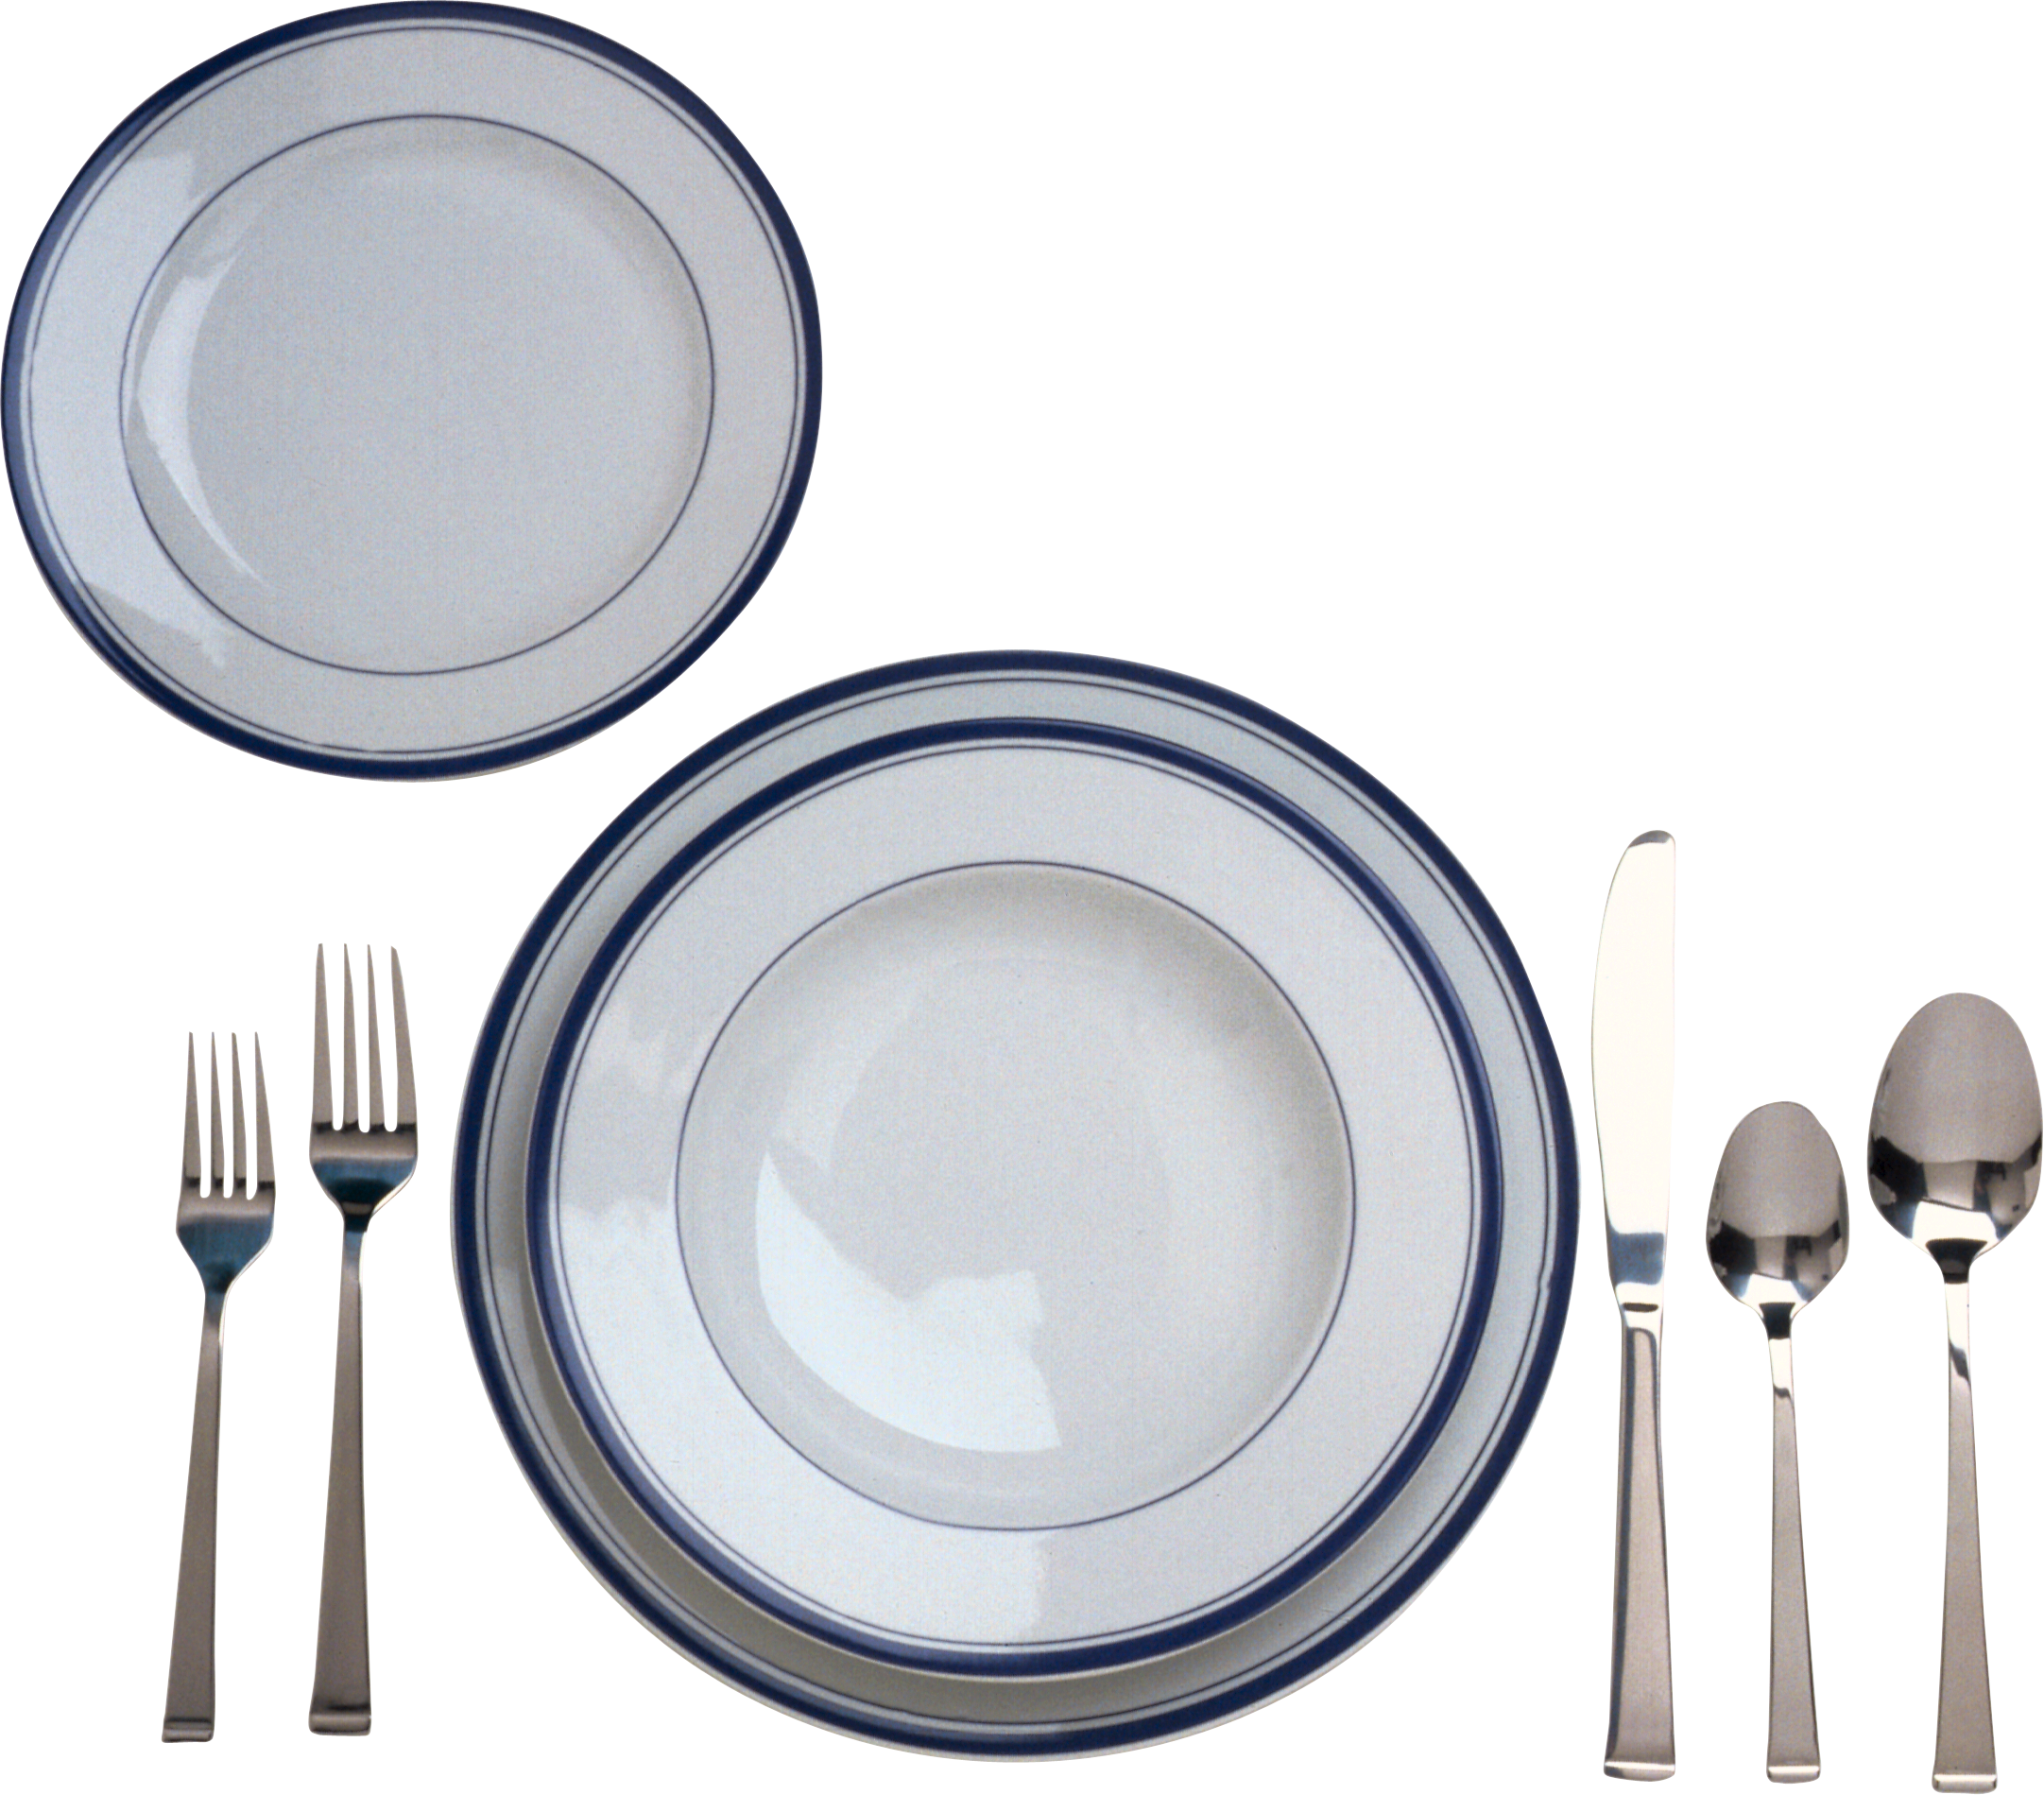 Dinner plate transparent png. Plates photo images free